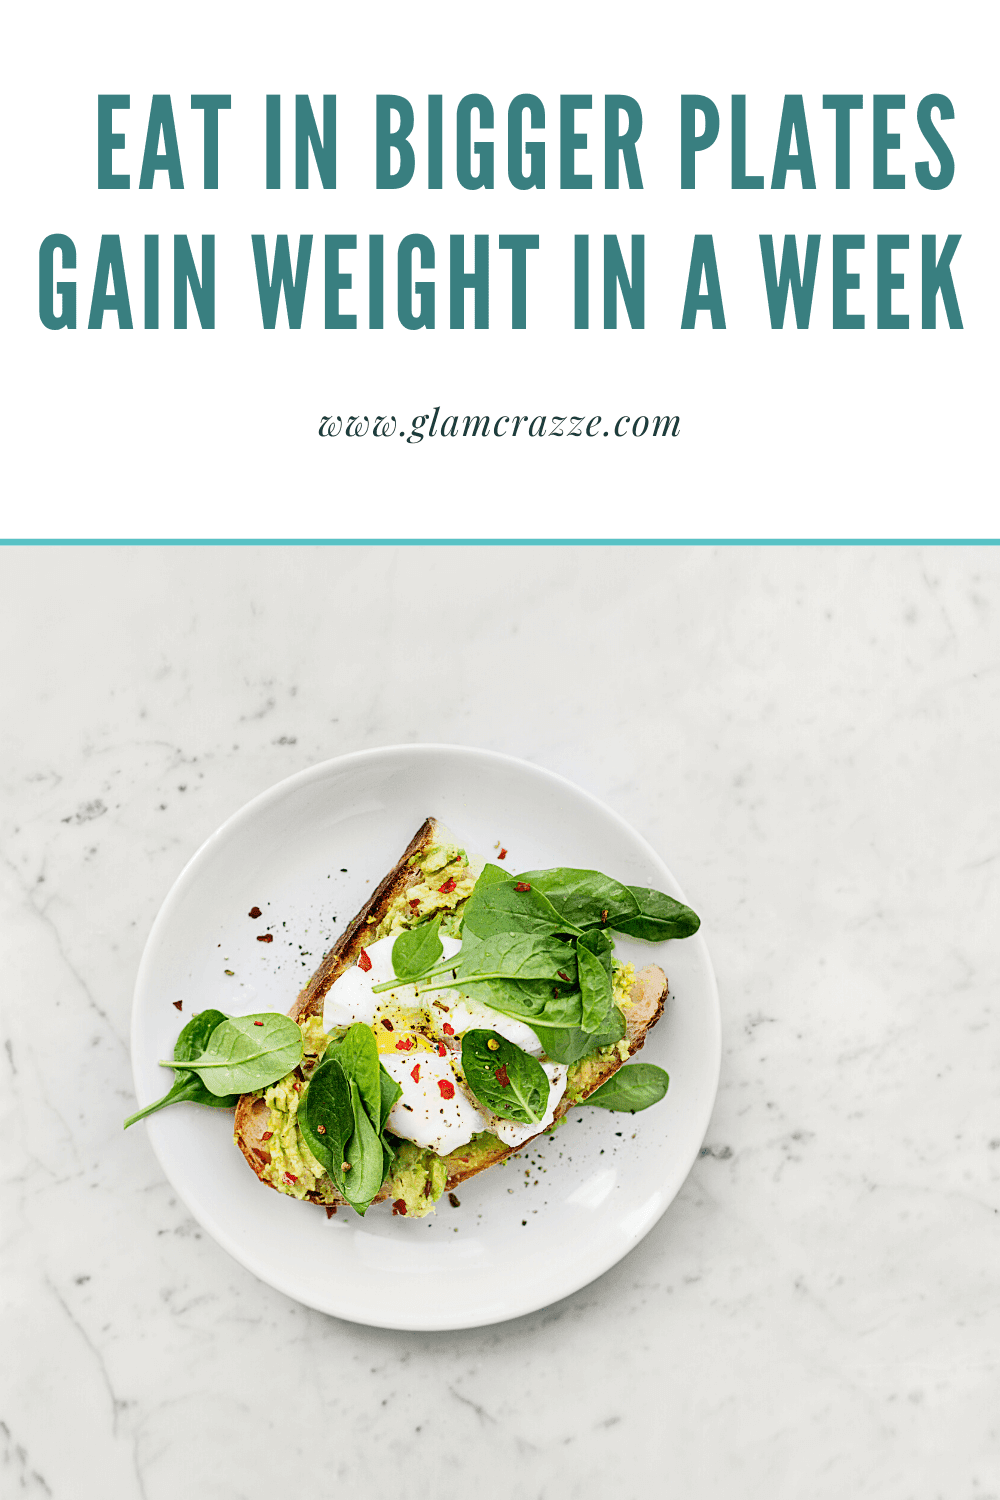 How to gain weight in a week